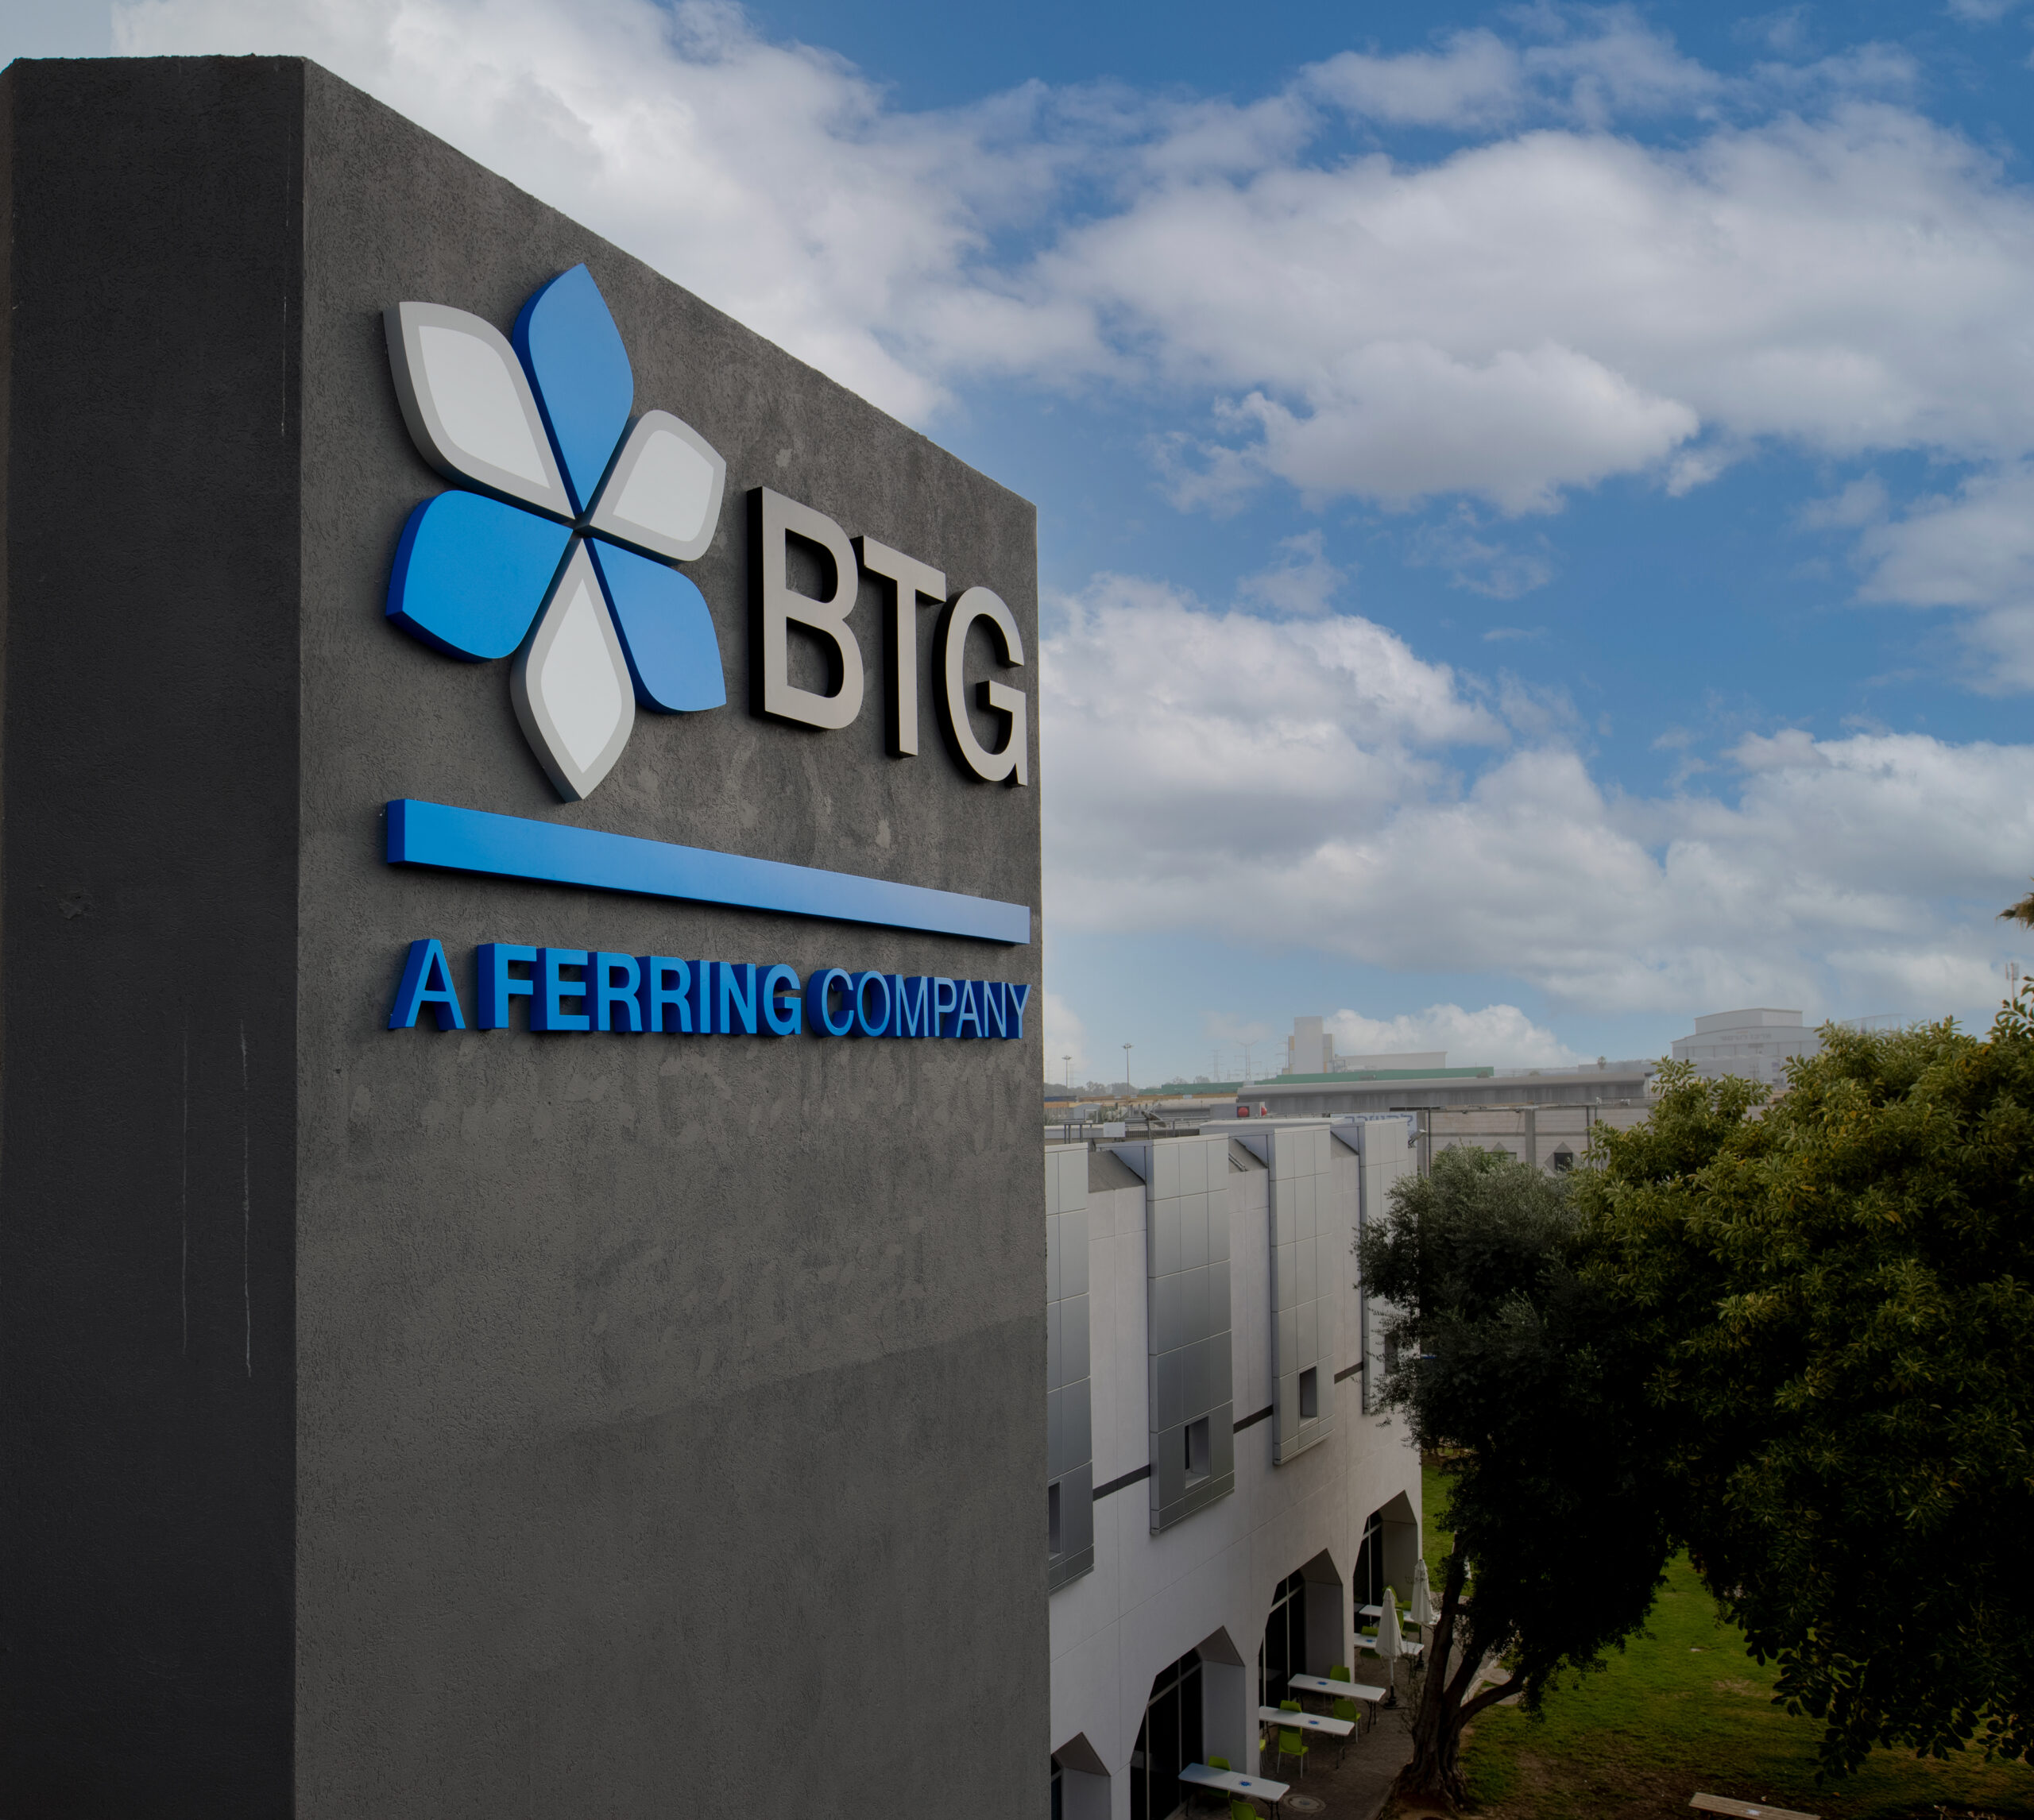 ferring-drug-discovery-and-early-clinical-development-r-and-d-site-btg